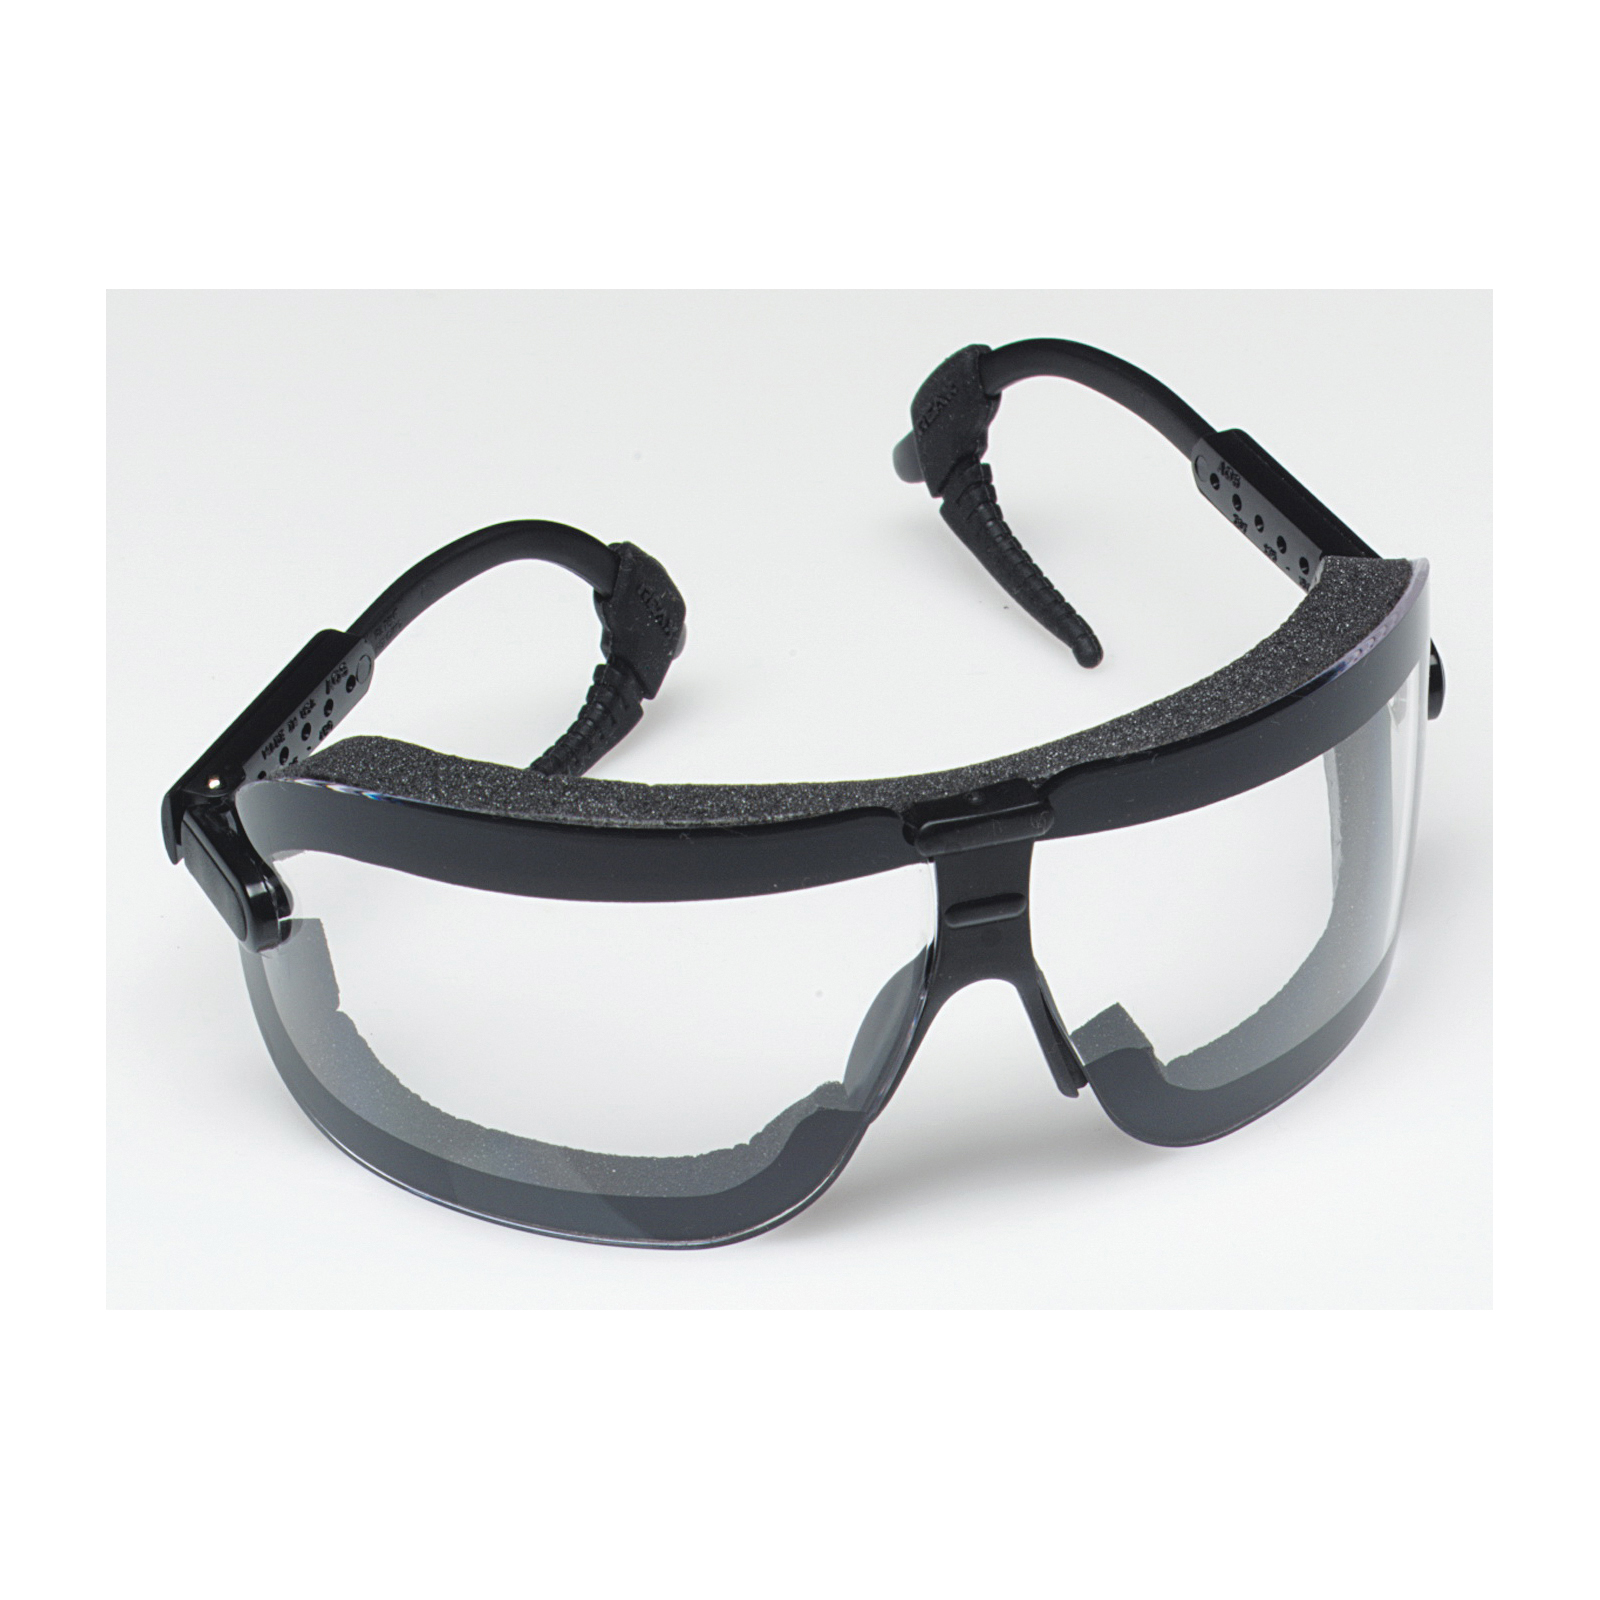 3M™ Fectoggles™ 078371-62325 16420-00000-10 Protective Safety Goggles With Black Temple, Anti-Fog/Anti-Scratch Clear Polycarbonate Lens, 99.9% % UV Protection, Elastic Strap, Specifications Met: ANSI Z87.1-2010, CSA Z94.3-2007